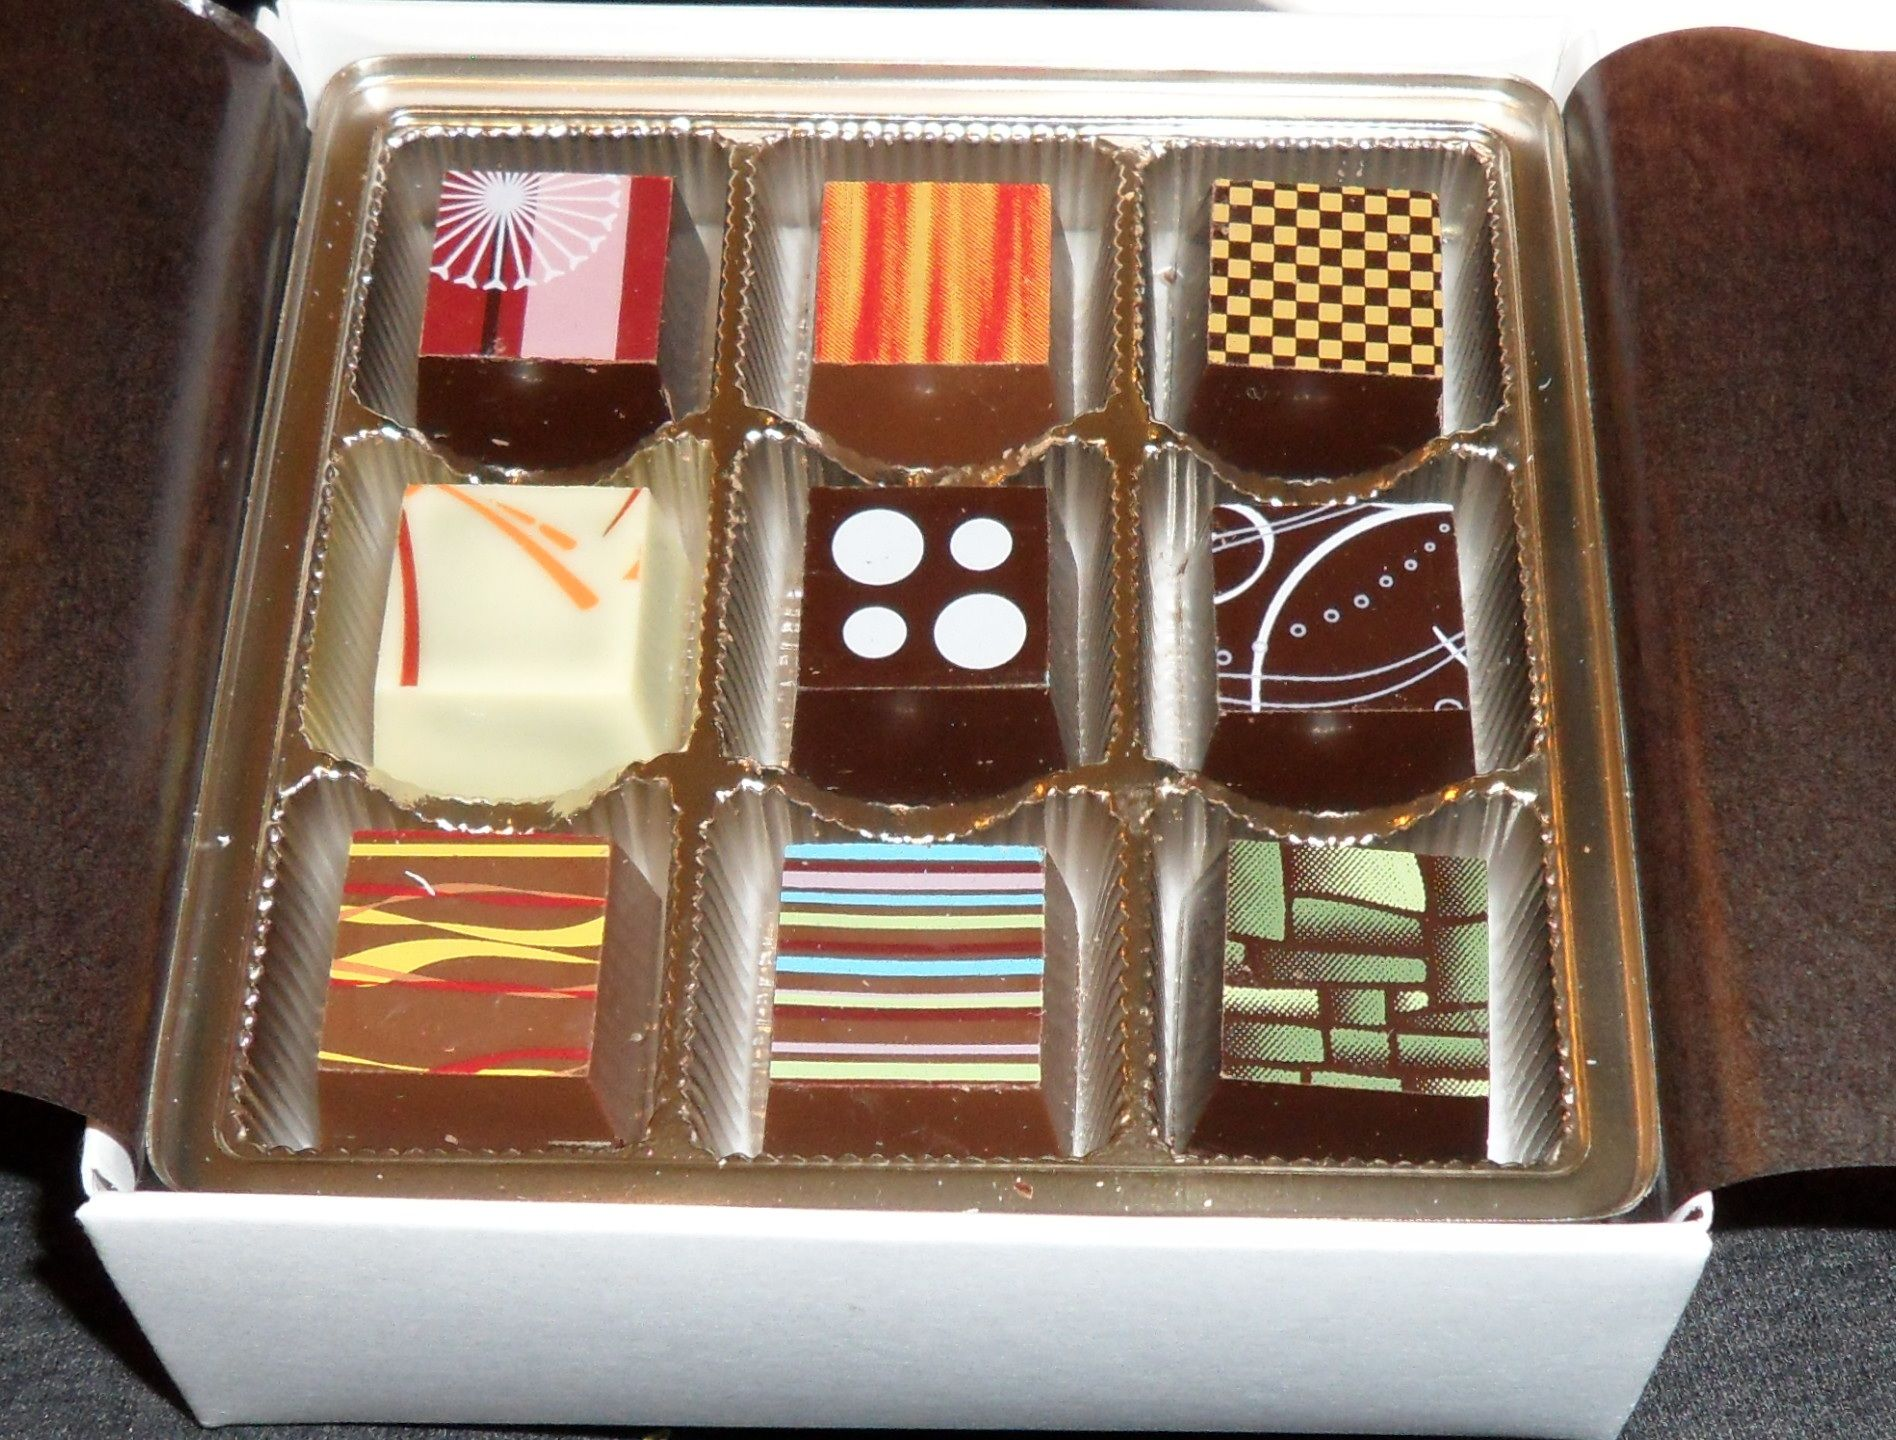 Most amazing chocolate I've ever had what my bf got me in Montreal, gorgeous designs and unique flavours.